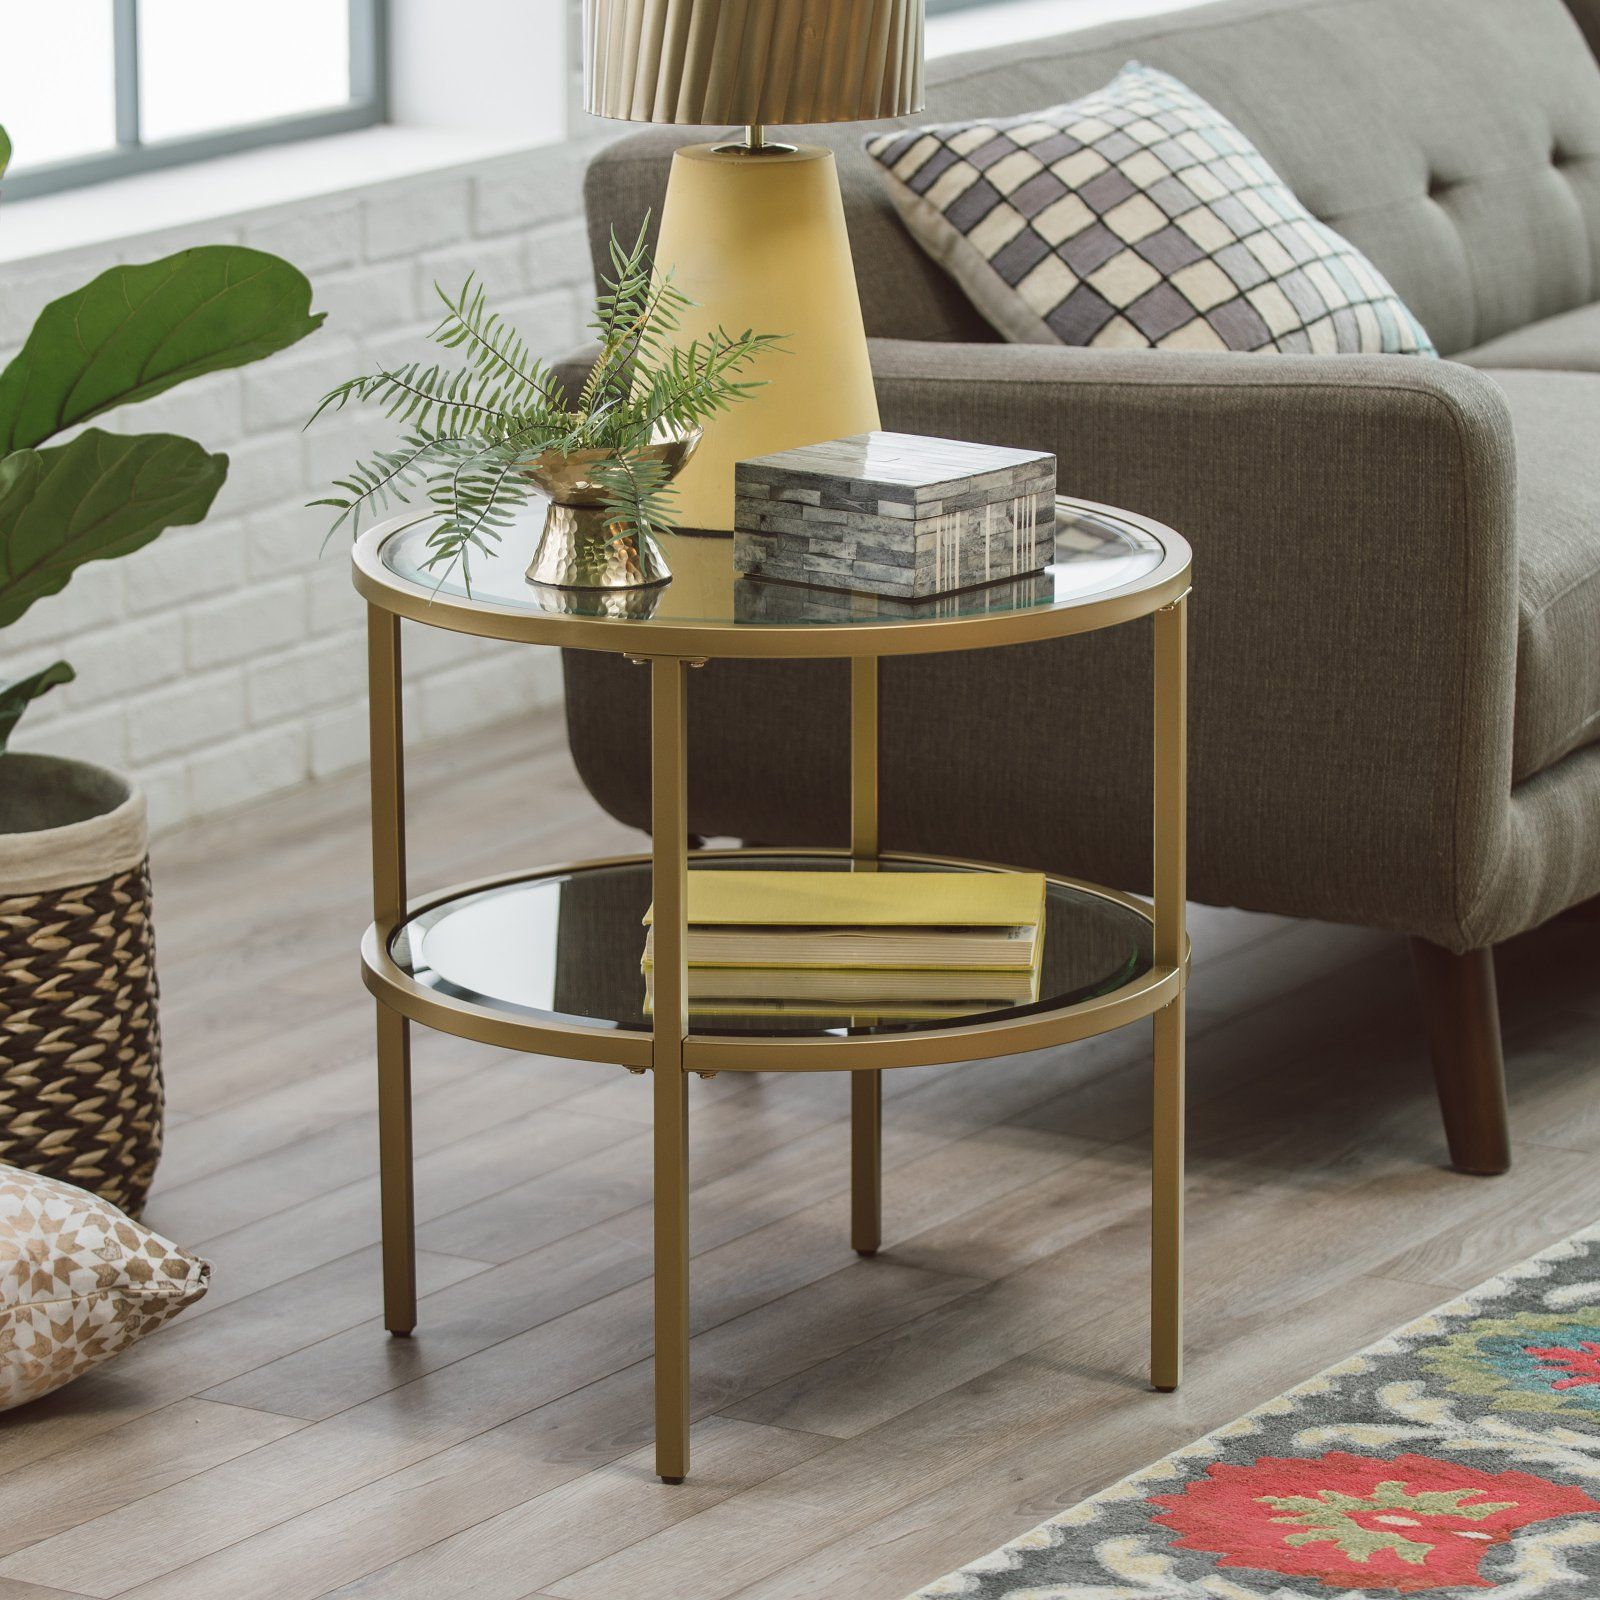 Belham Living Lamont Round End Table - Gold | Products in ...